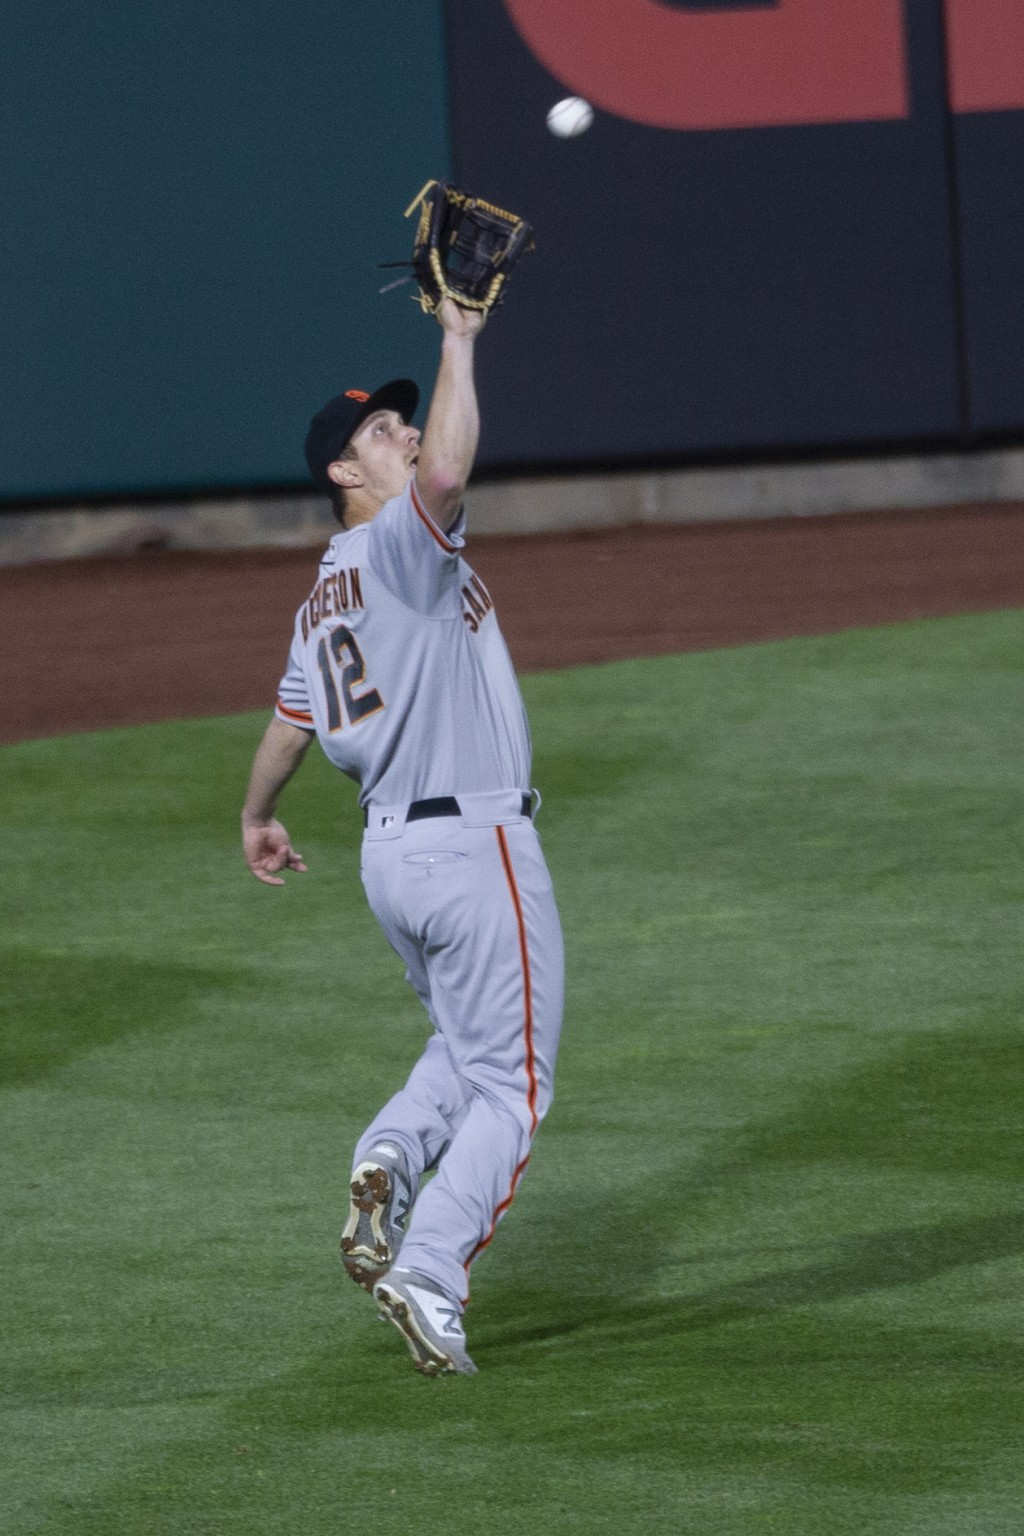 San Francisco Giants left fielder Alex Dickerson catches a fly during the second inning of a baseball game, Monday, April 19, 2021, in Philadelphia. (...